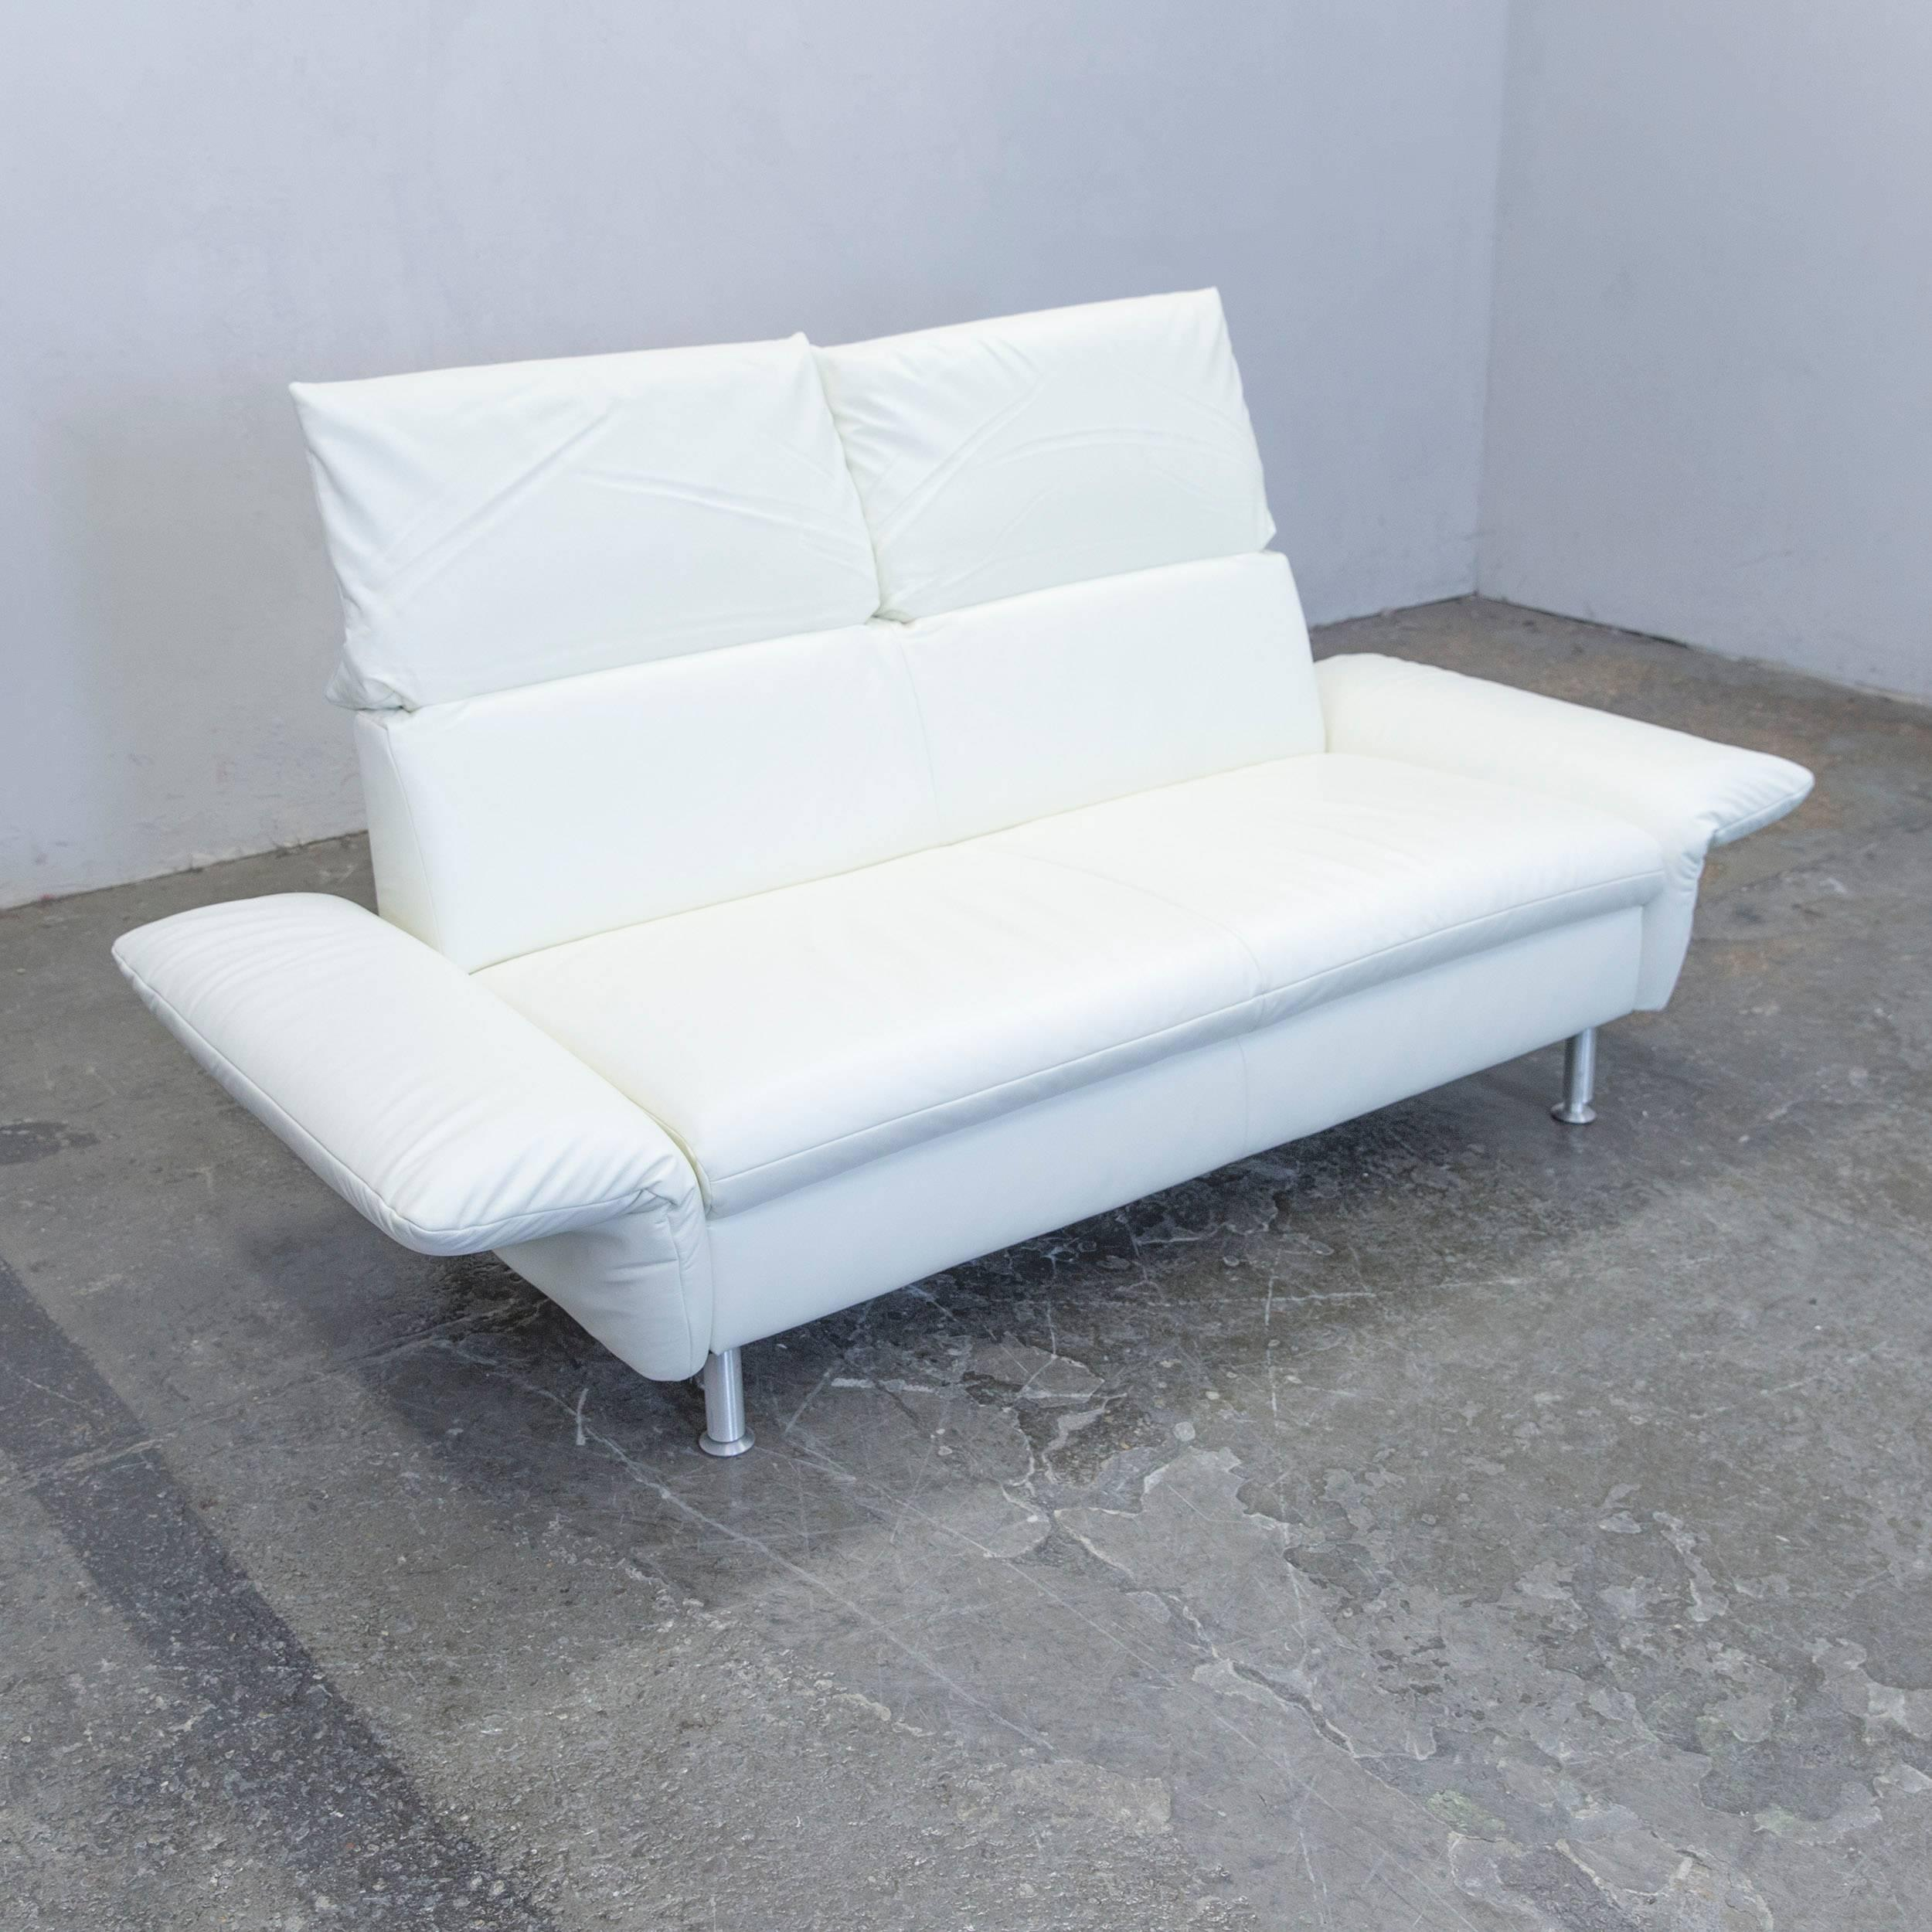 Dreisitzer Sofa Ikea Sofa Leder Modern Latest L With Sofa Leder Modern Top Ecksofa